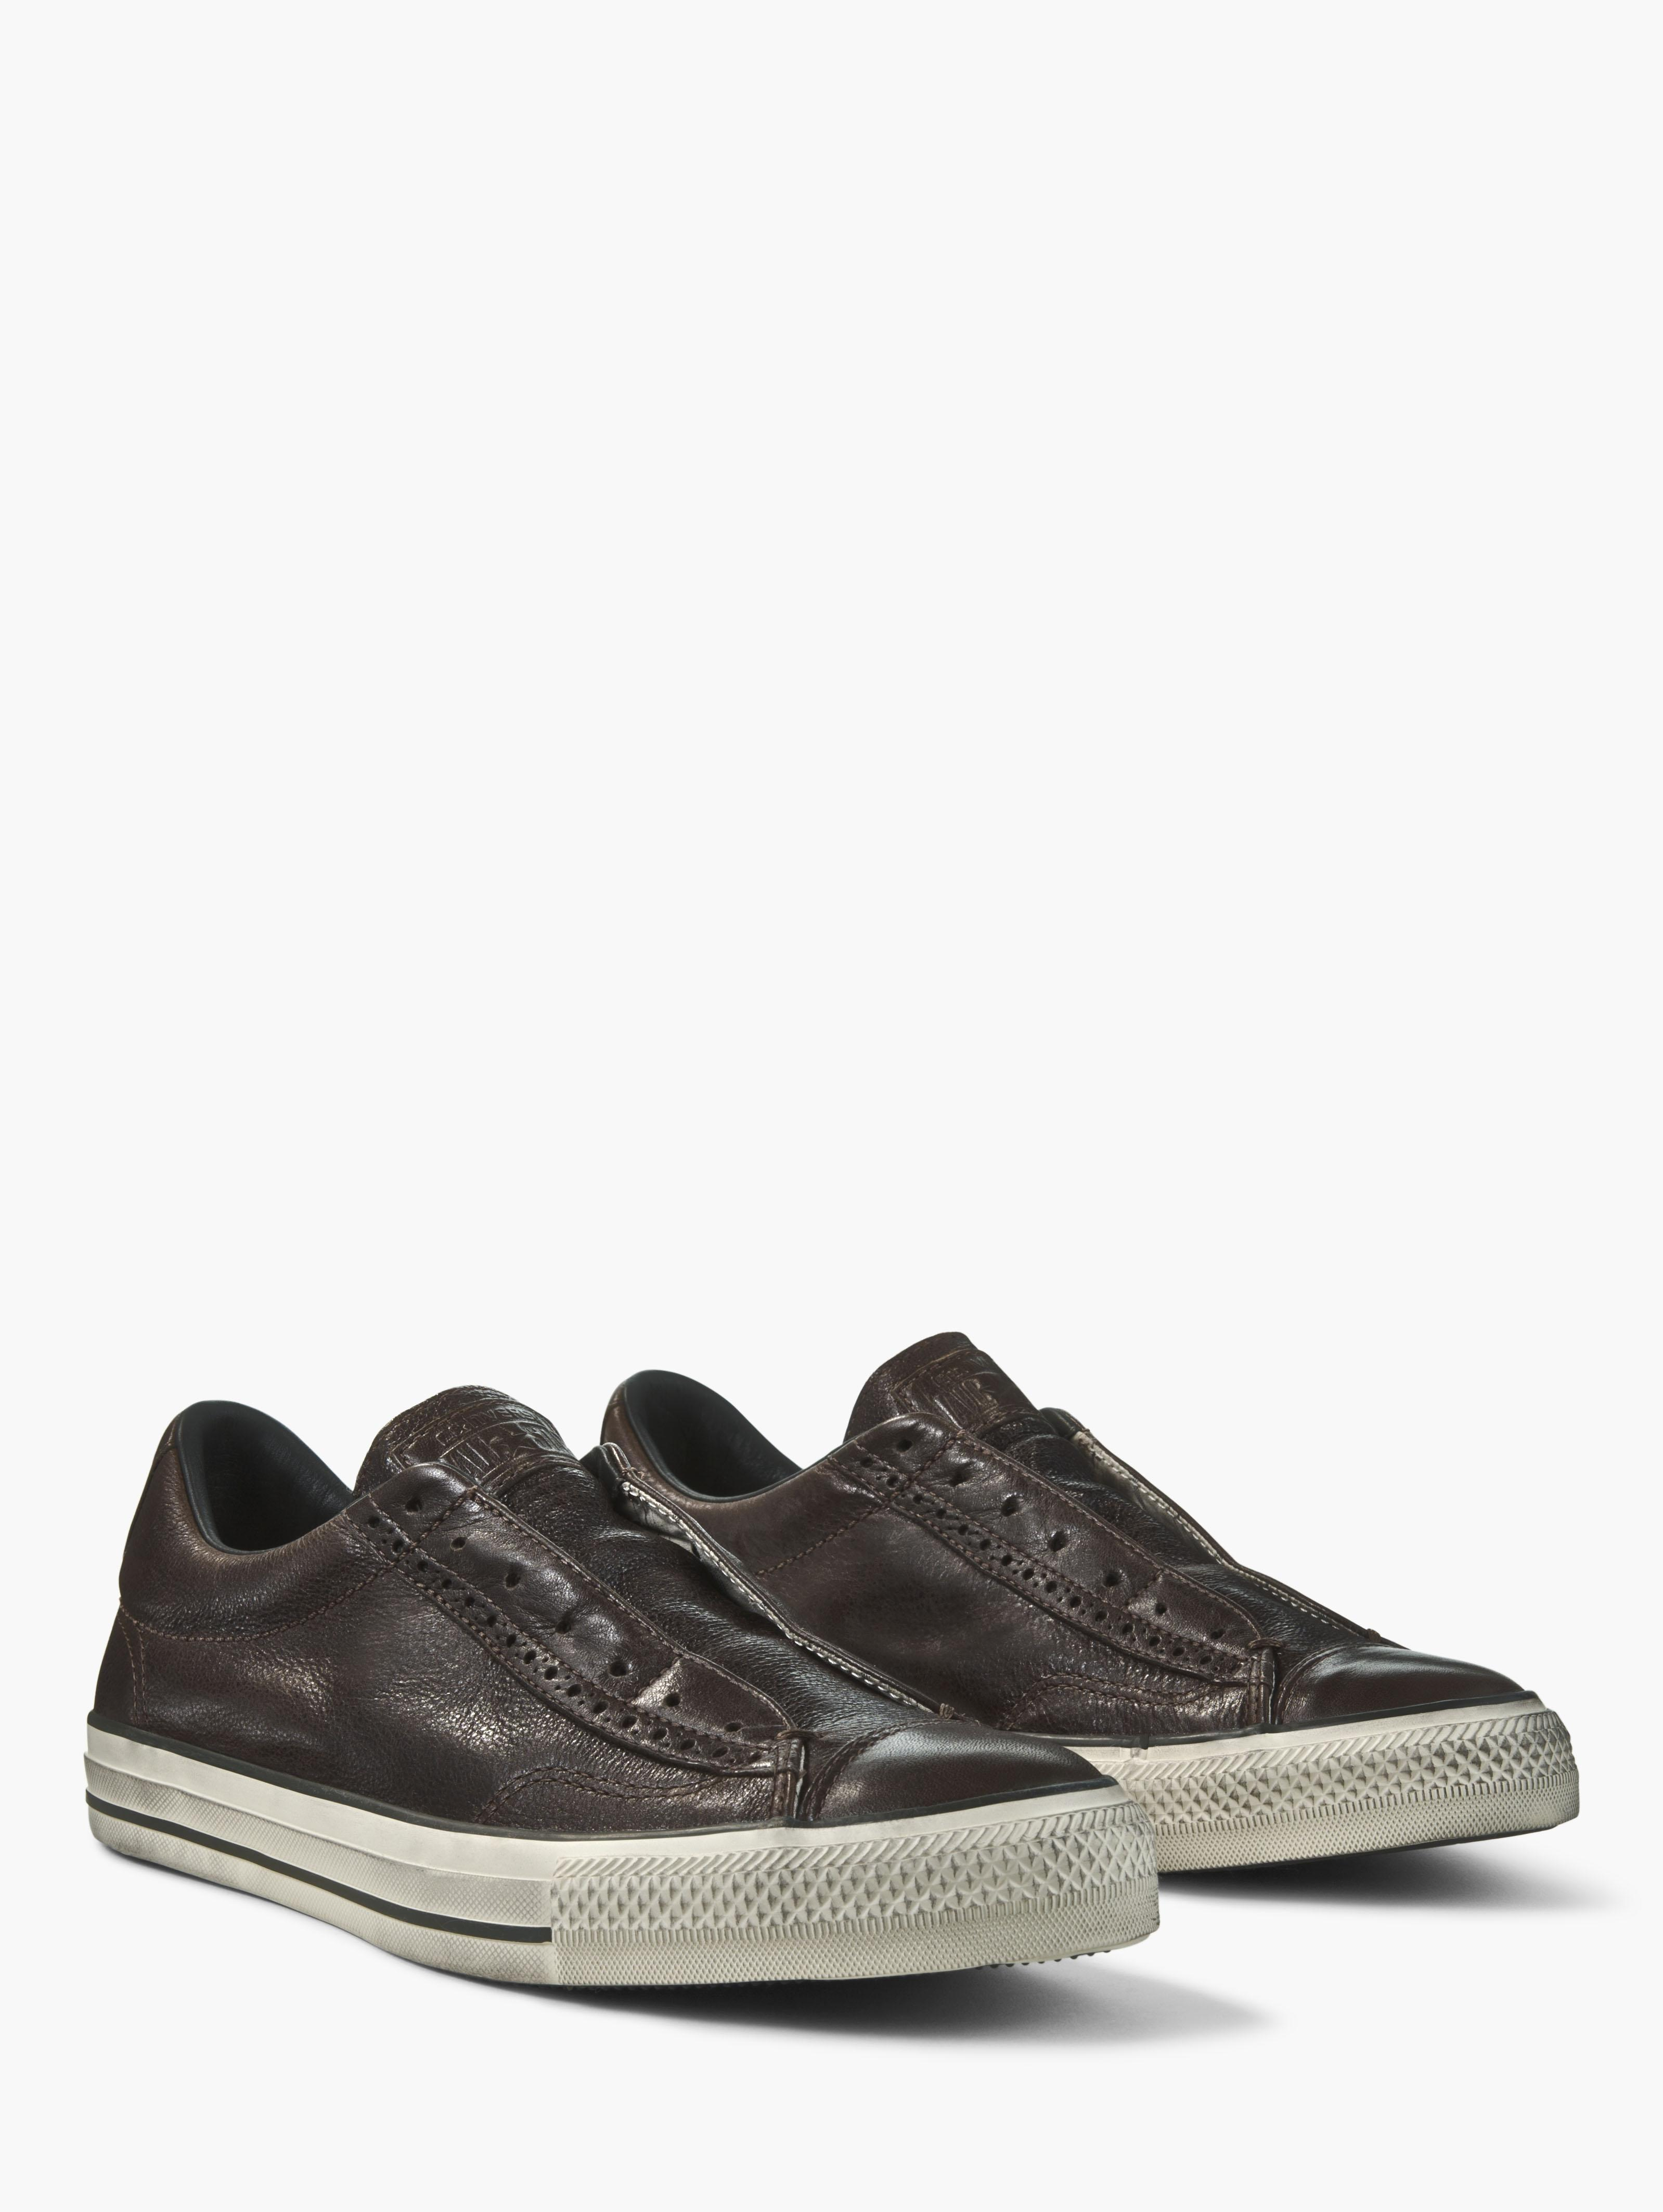 Chuck Taylor Vintage Leather Slip On